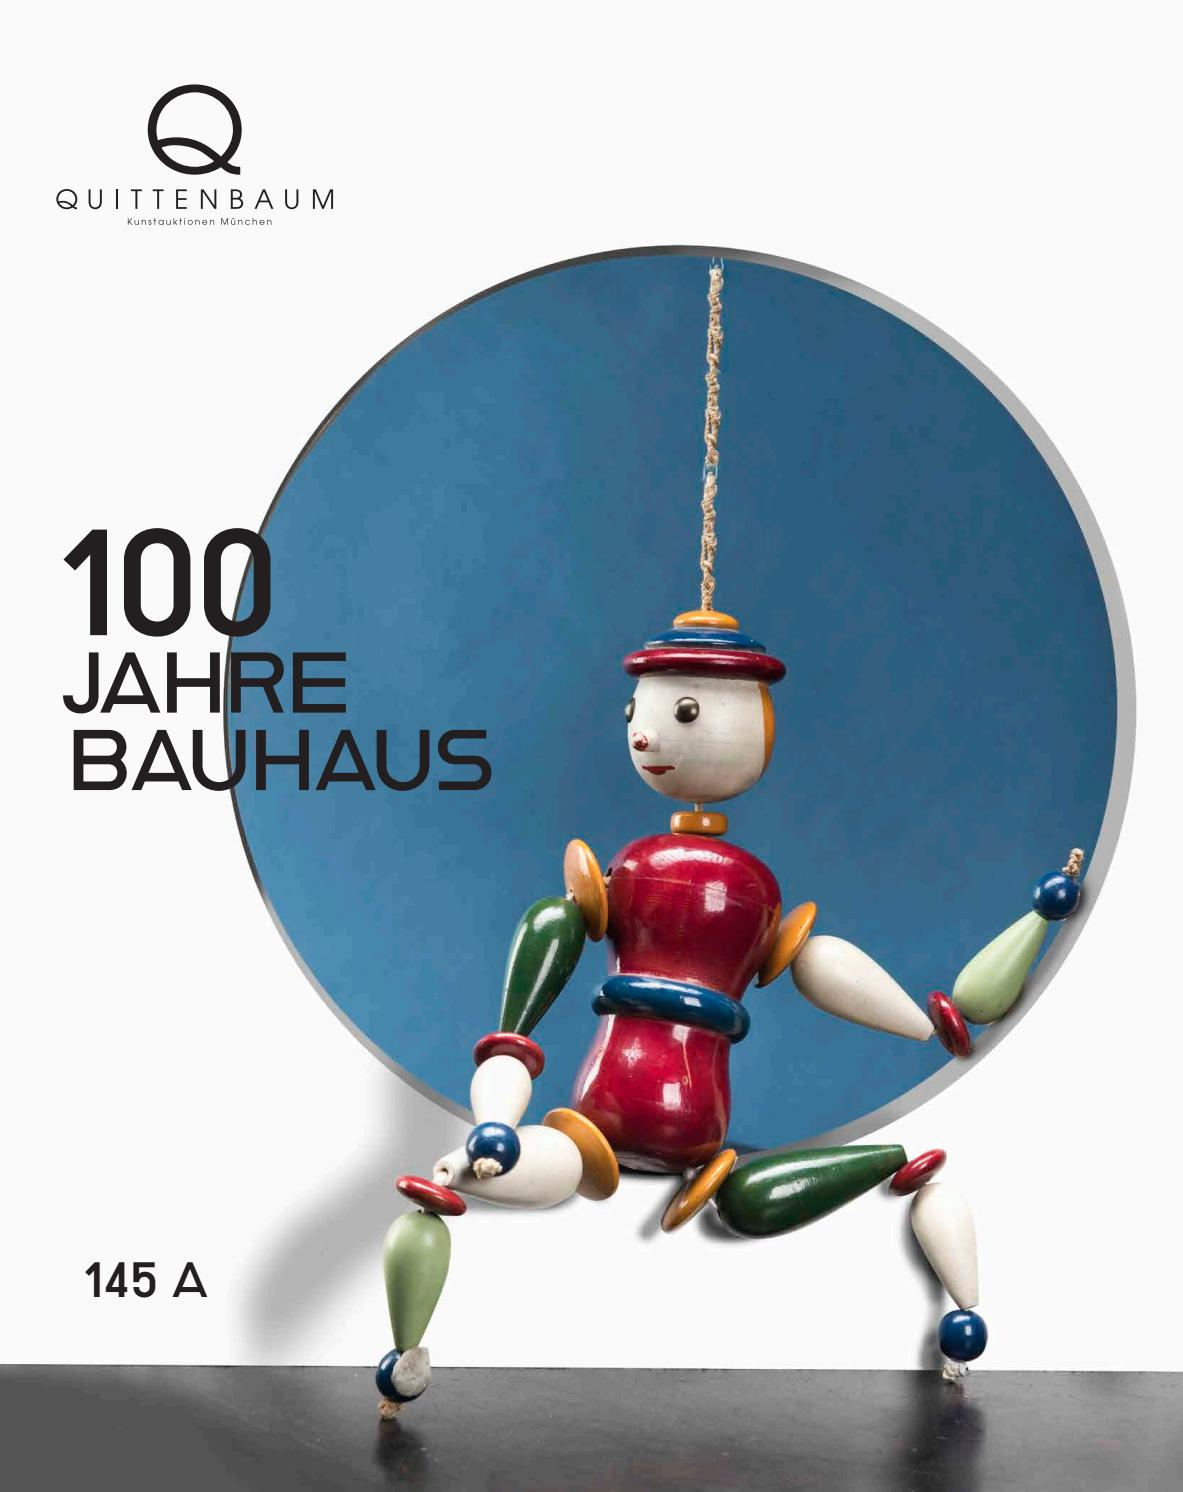 Auction 145a 100 Years Of Bauhaus Quittenbaum Art Auctions By